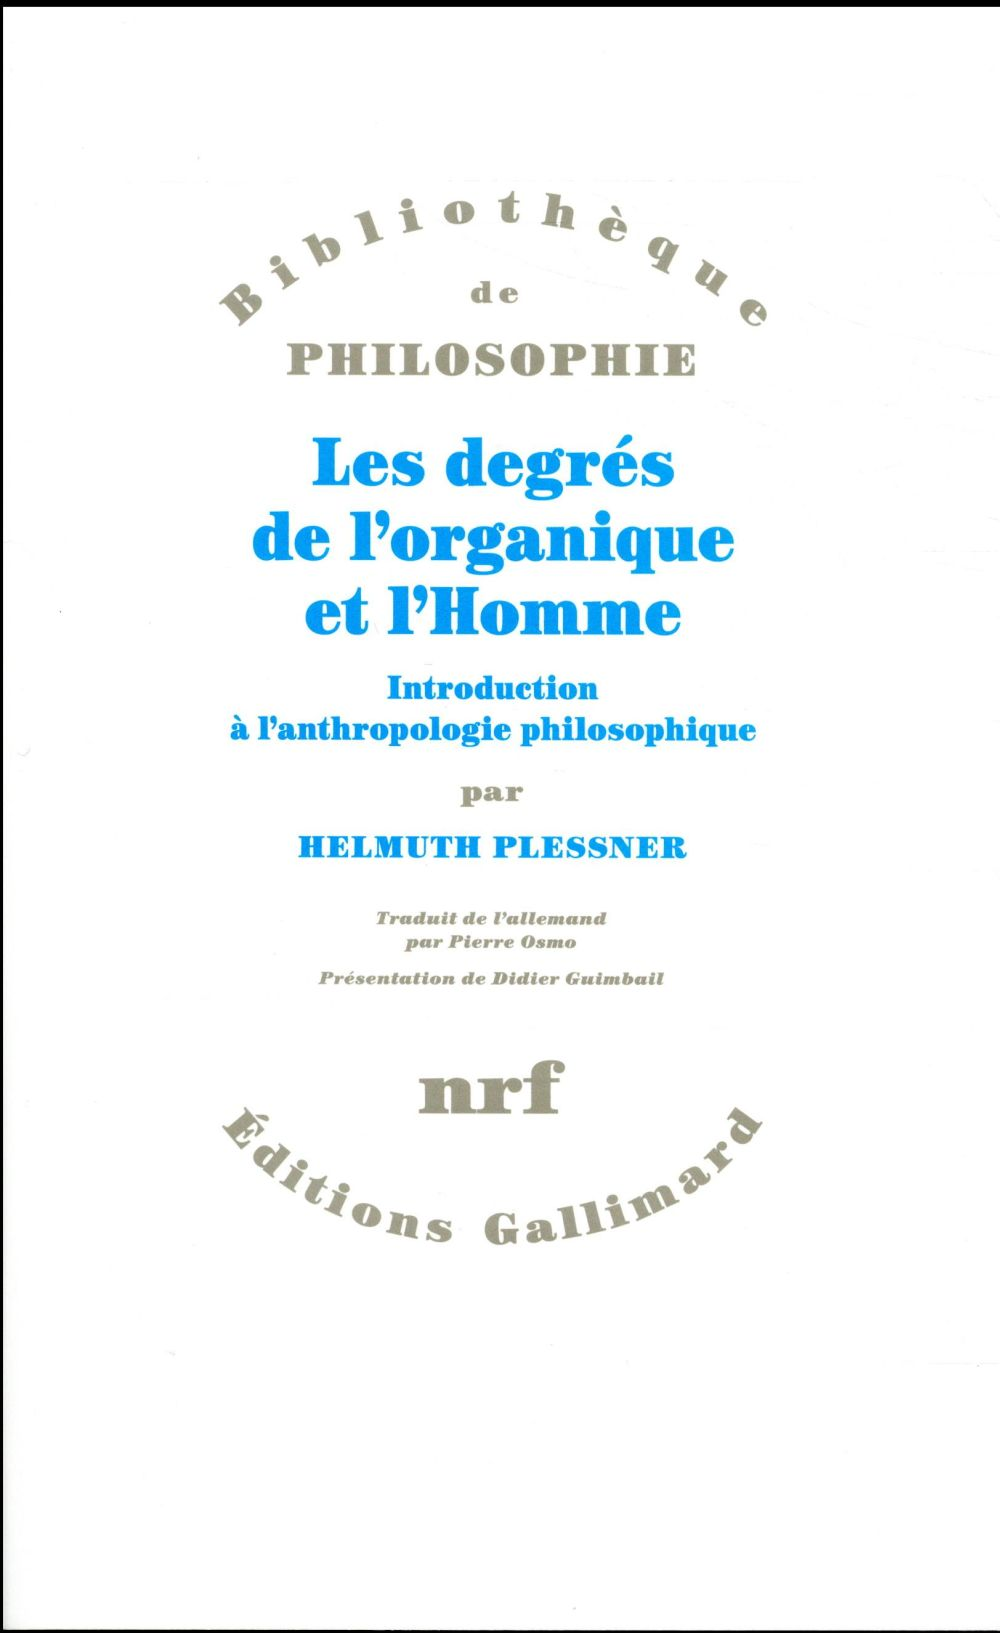 LES DEGRES DE L'ORGANIQUE ET L'HOMME   INTRODUCTION A L'ANTHROPOLOGIE PHILOSOPHIQUE